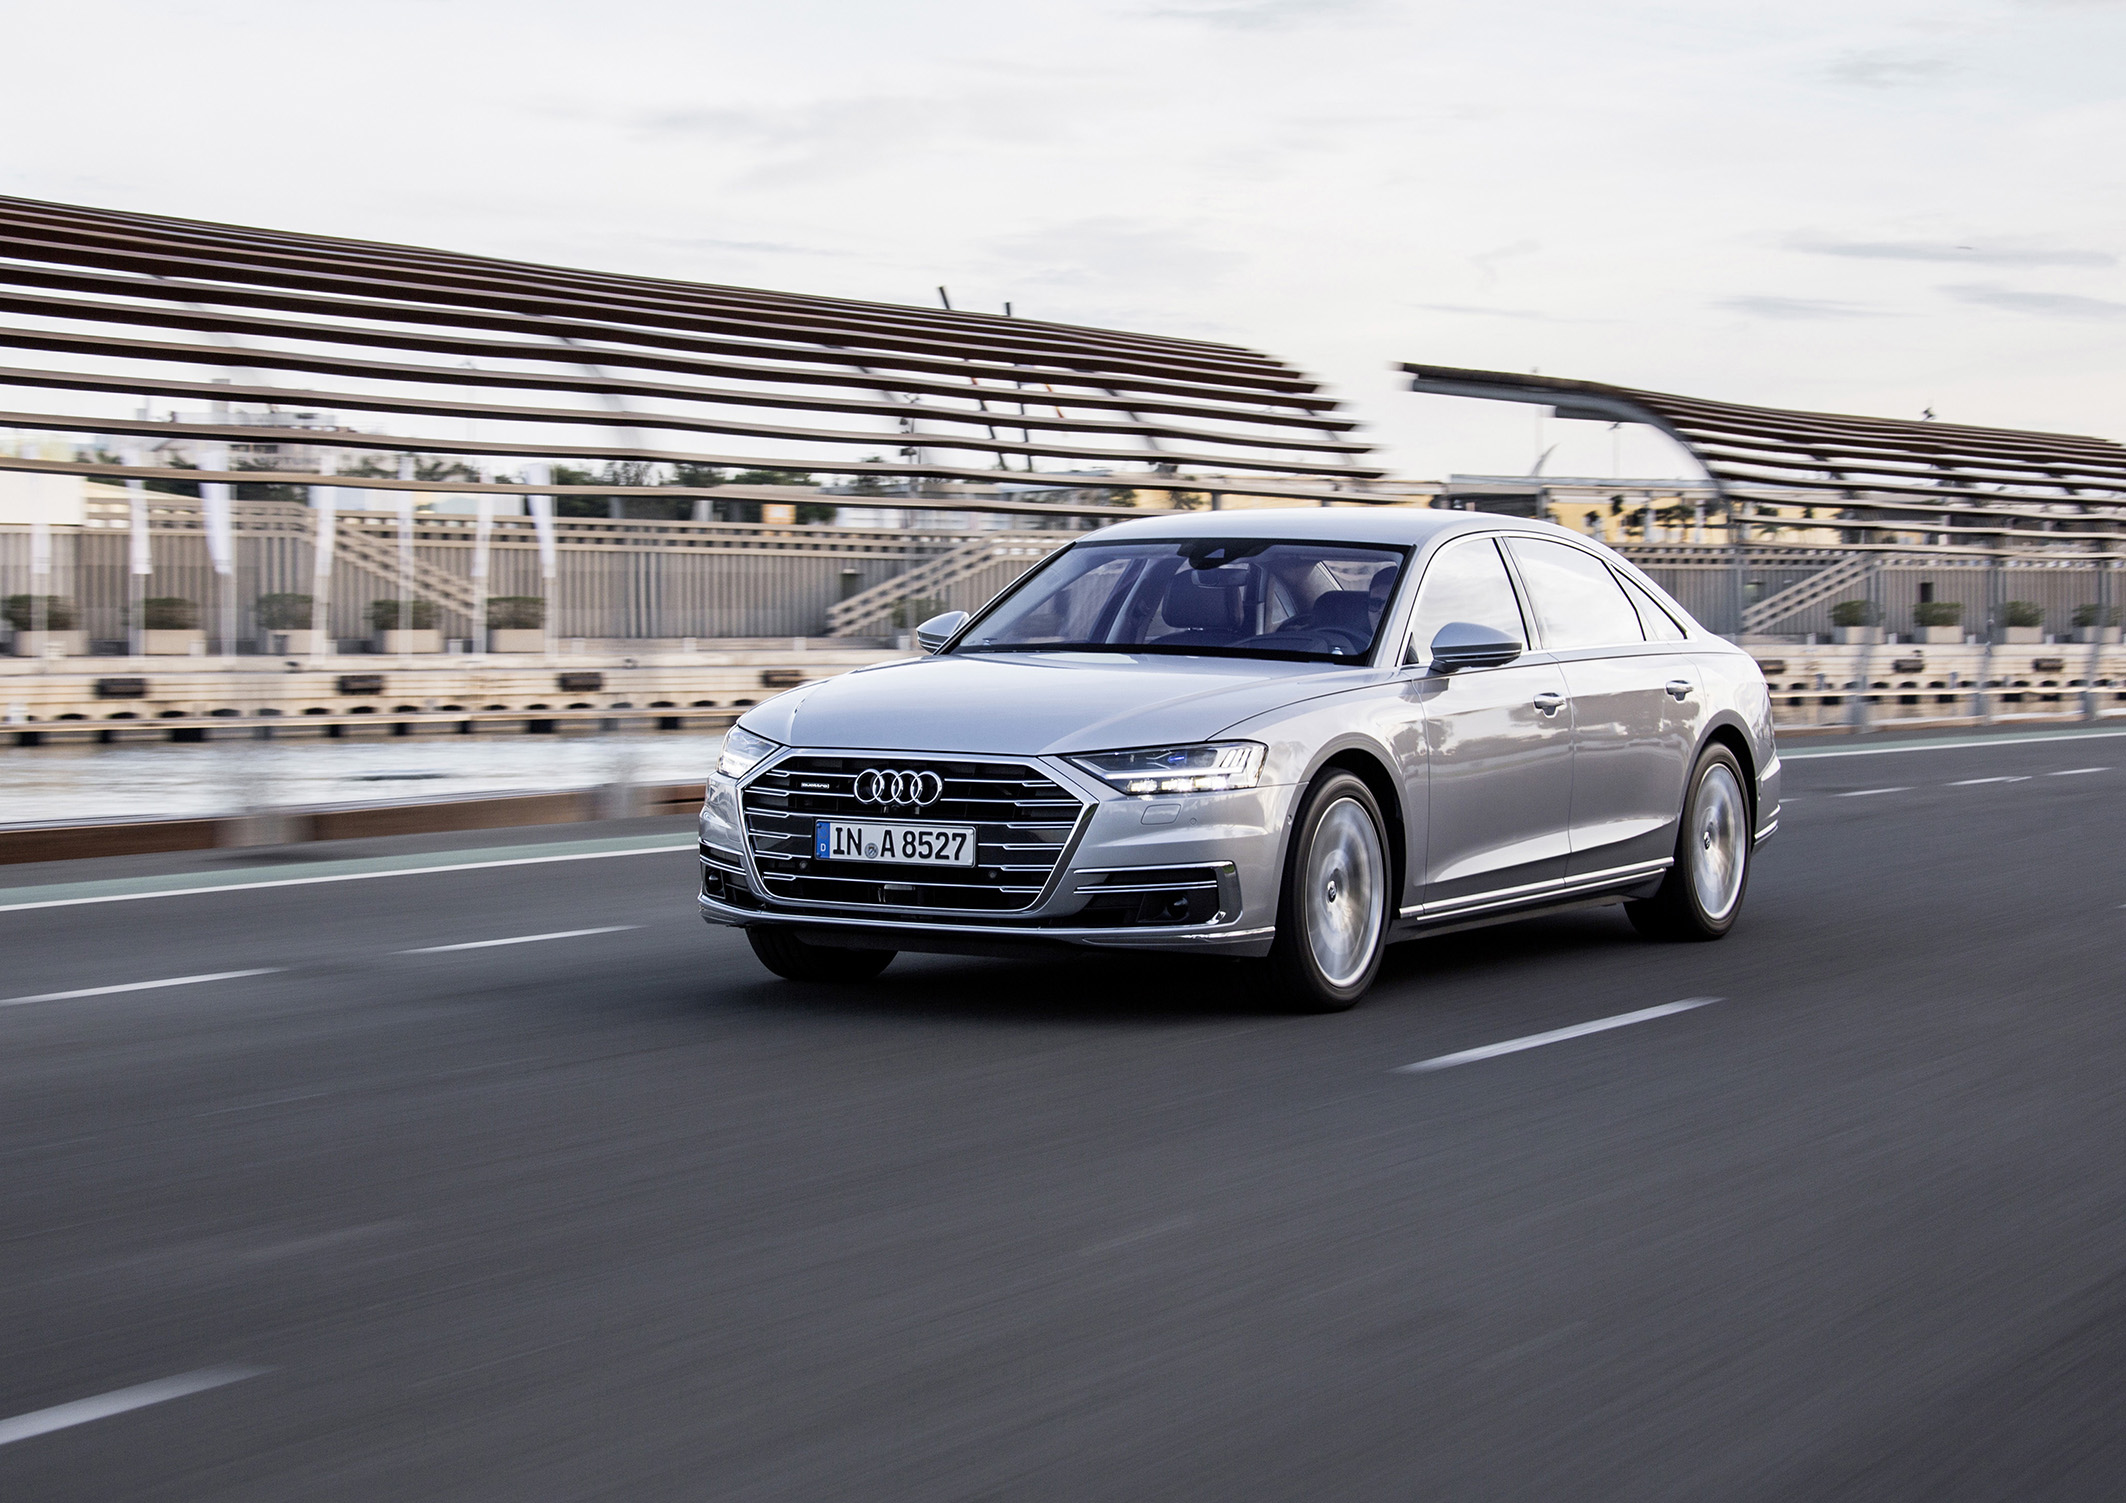 Audi Relies On Infineon Worlds First Series Production Car With